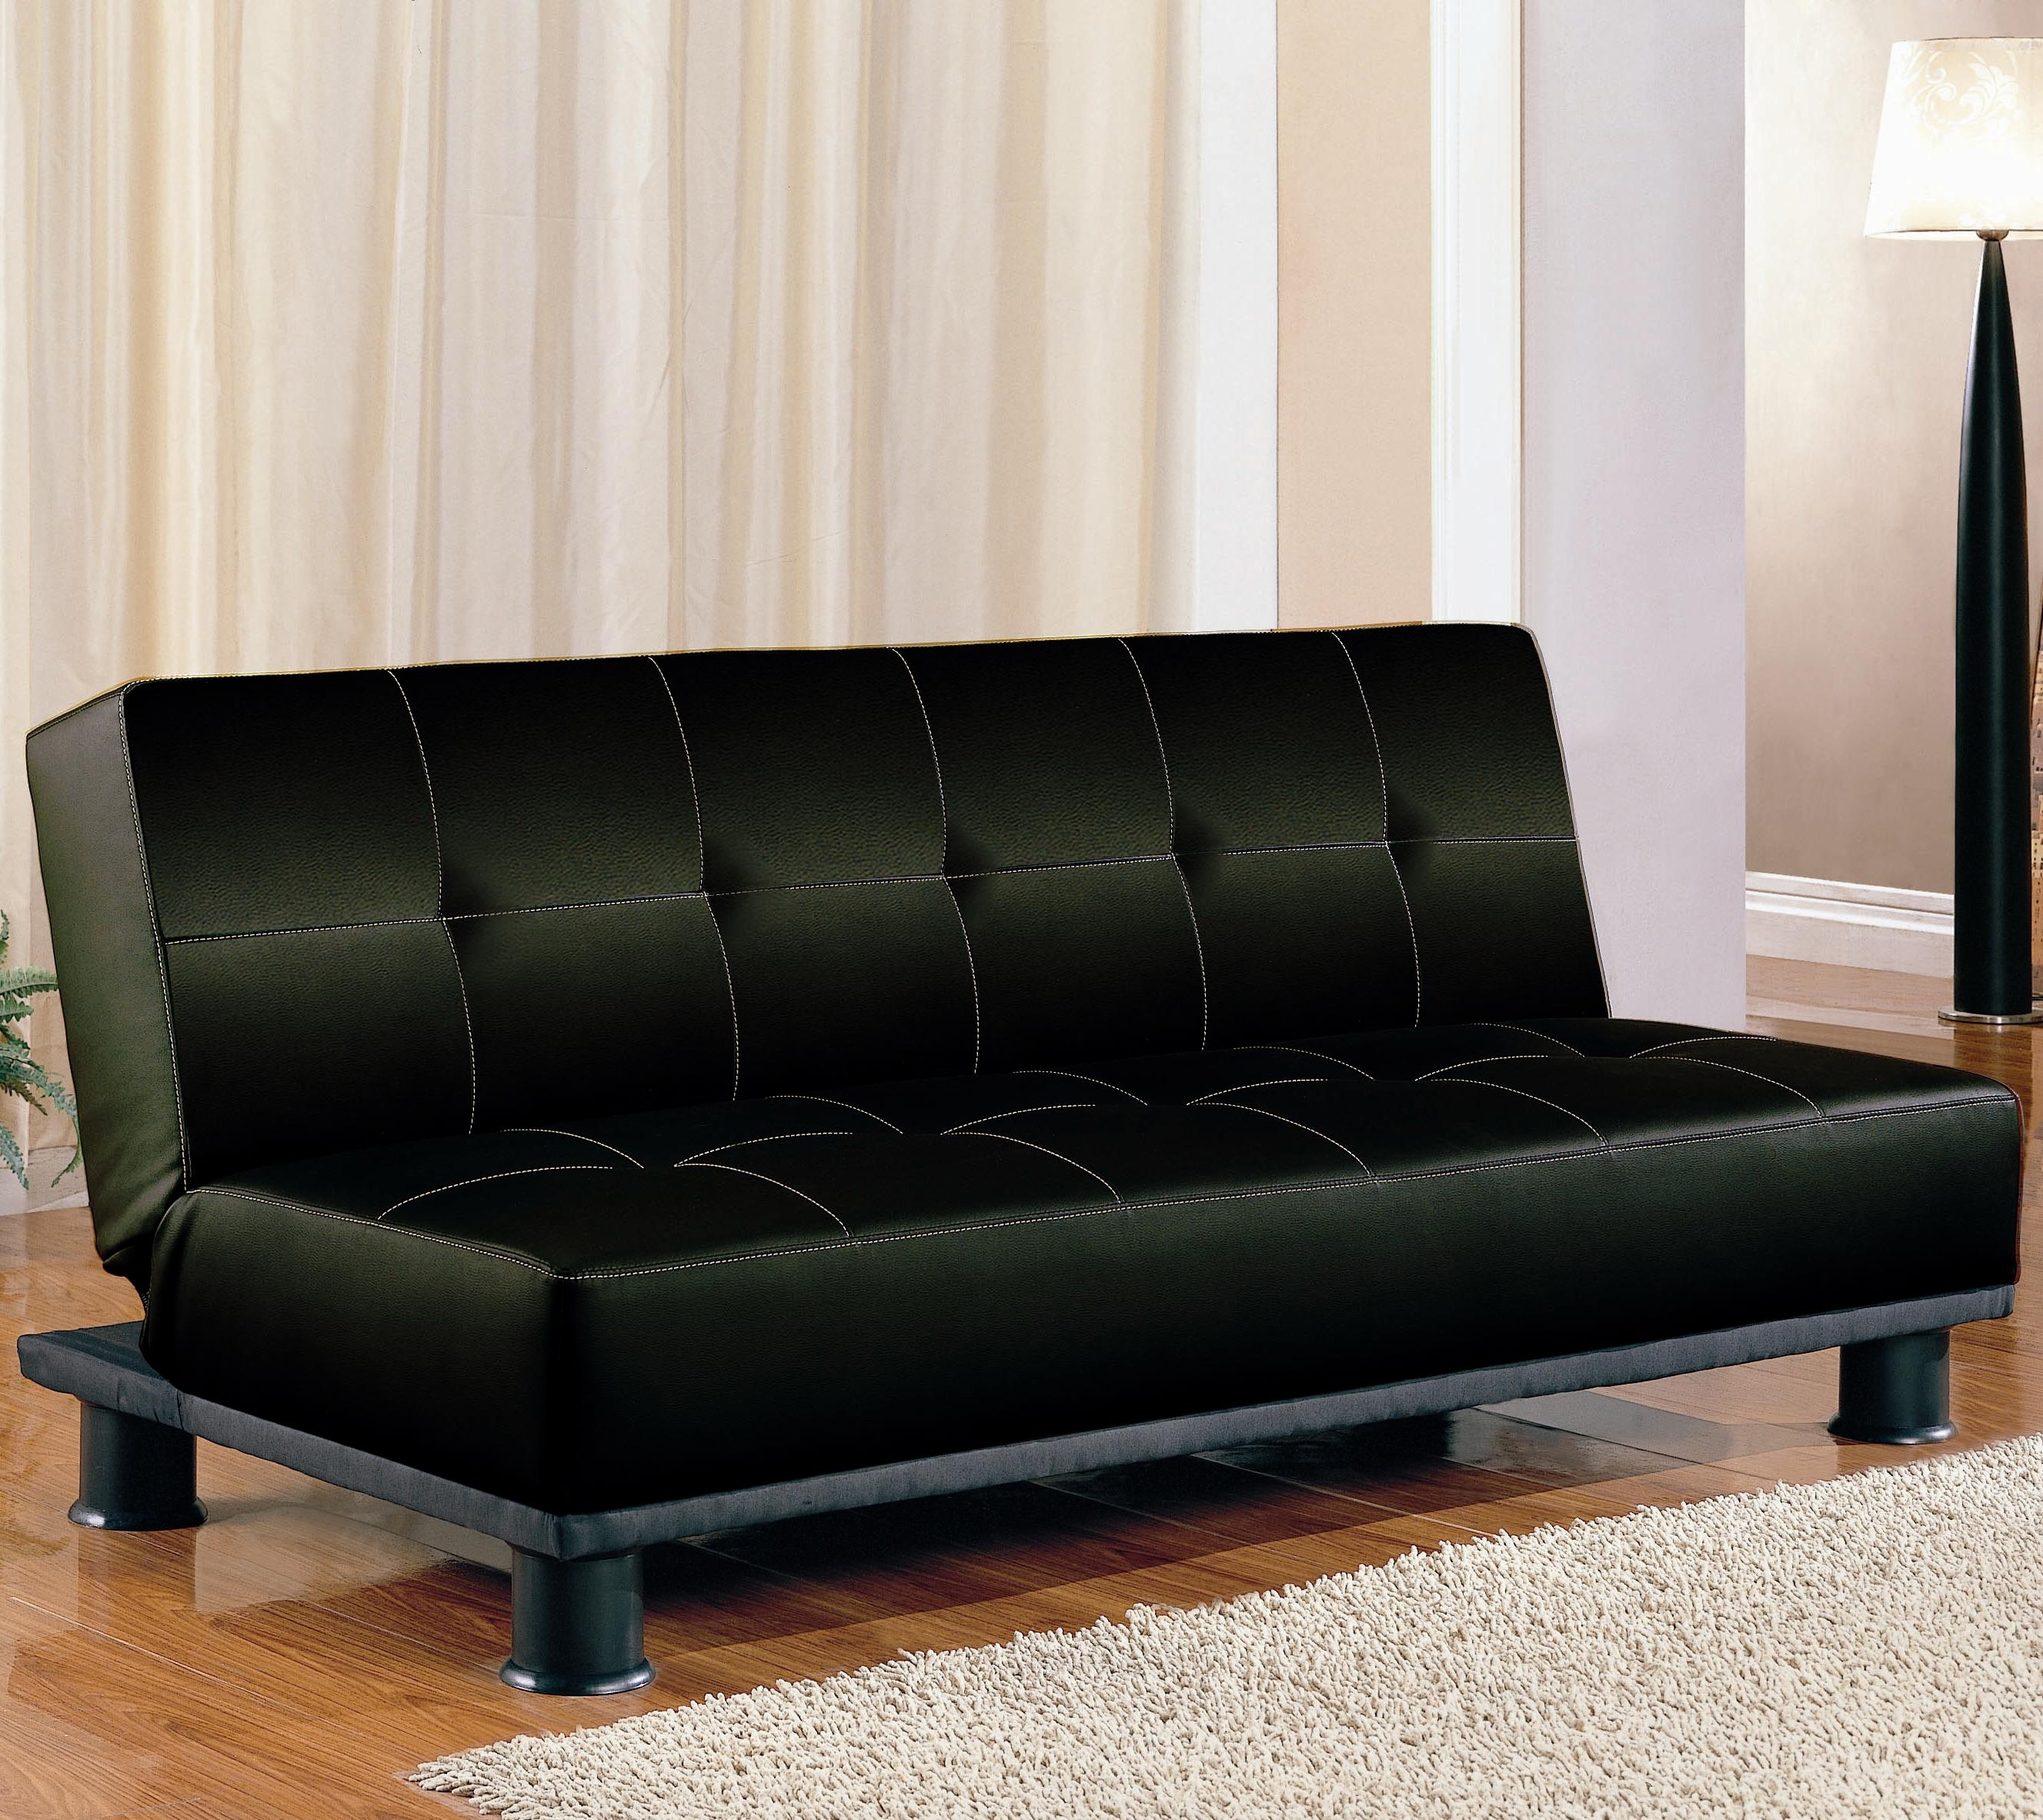 Furniture Castro Convertibles Sofa Beds Convertible How To Within Florence Sofa Beds (Image 12 of 15)